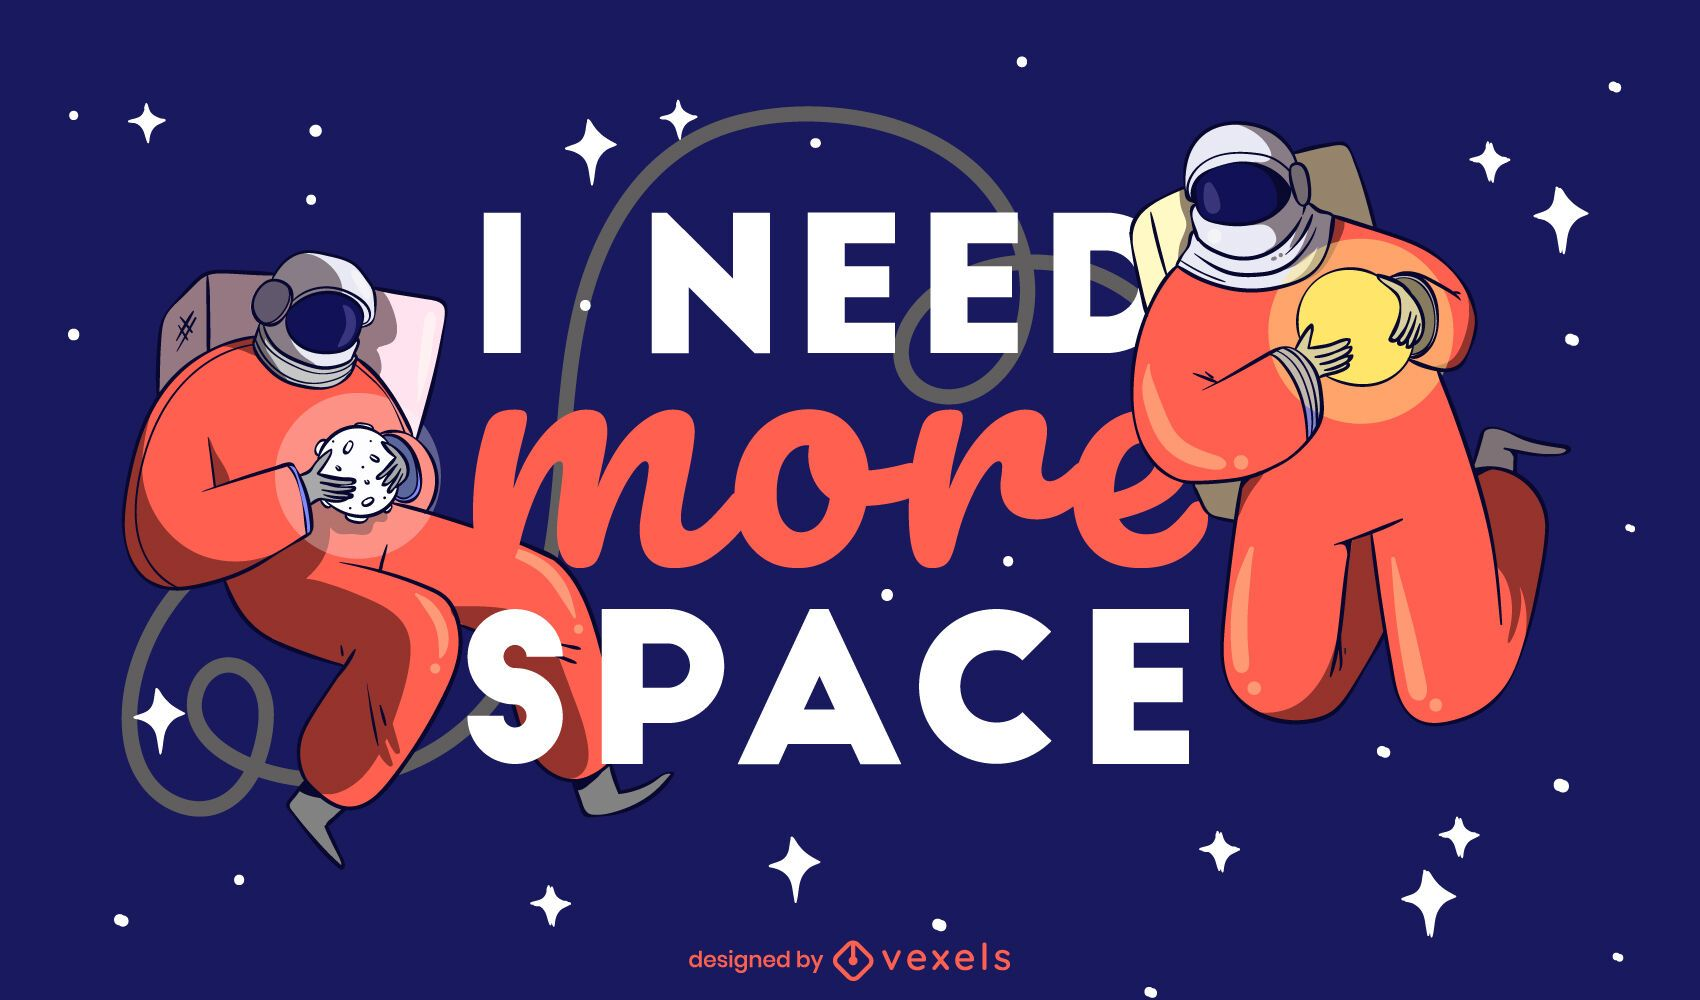 Need more space illustration